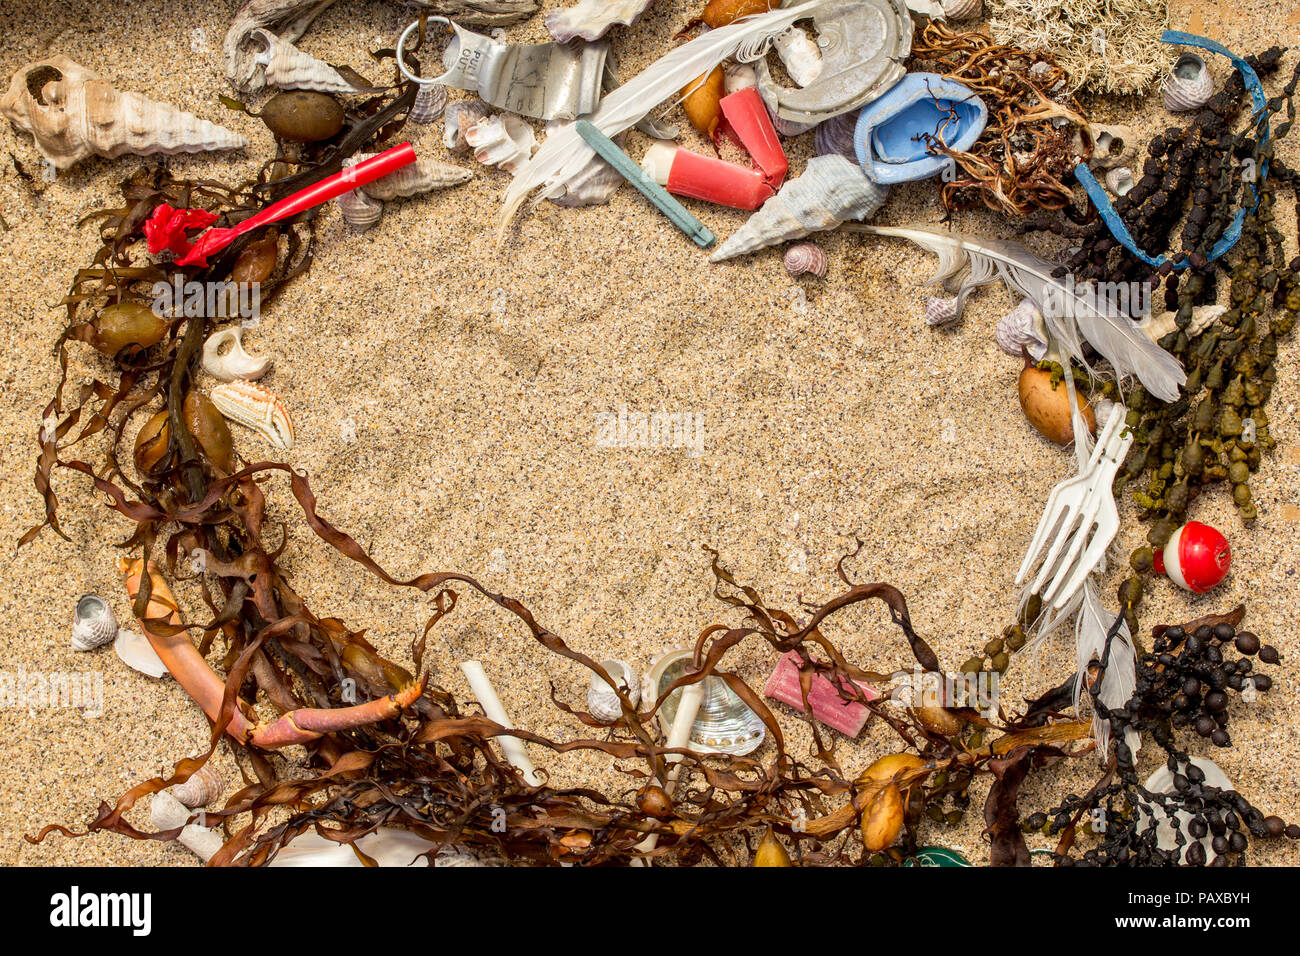 Real plastic pollution found on beach mixed in with natural seaweed and shells where it was found, space for text - Stock Image